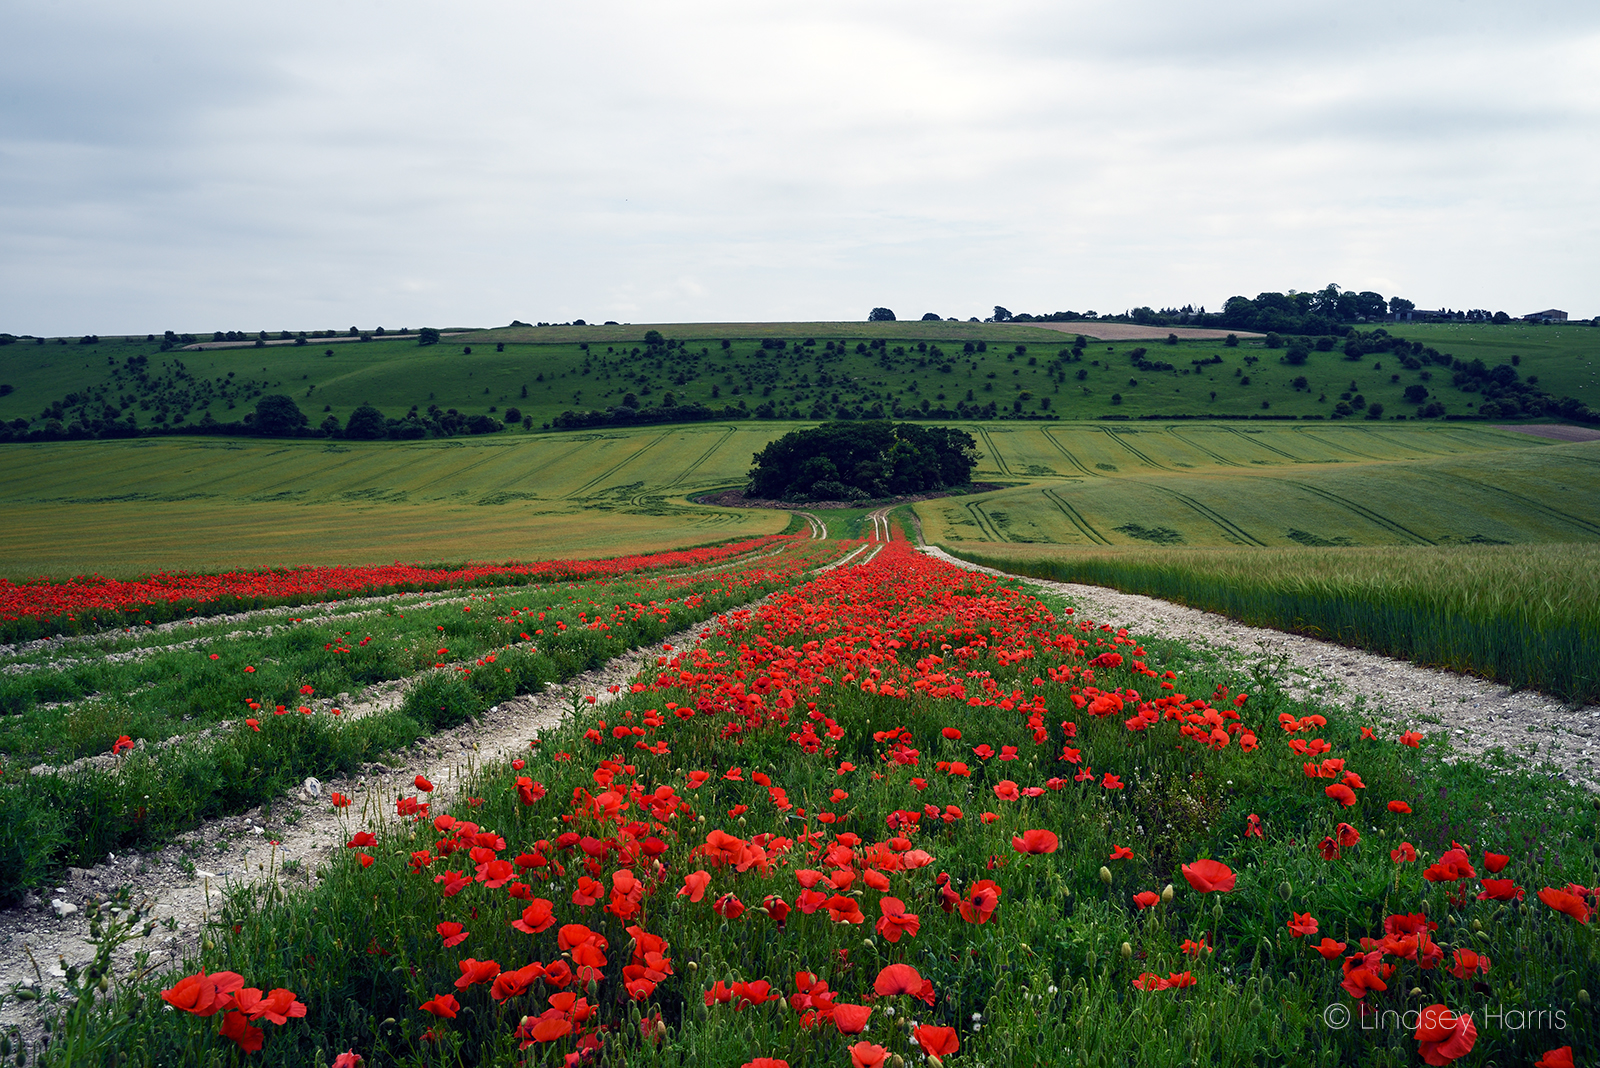 Red poppy fields Berkshire, 2018.